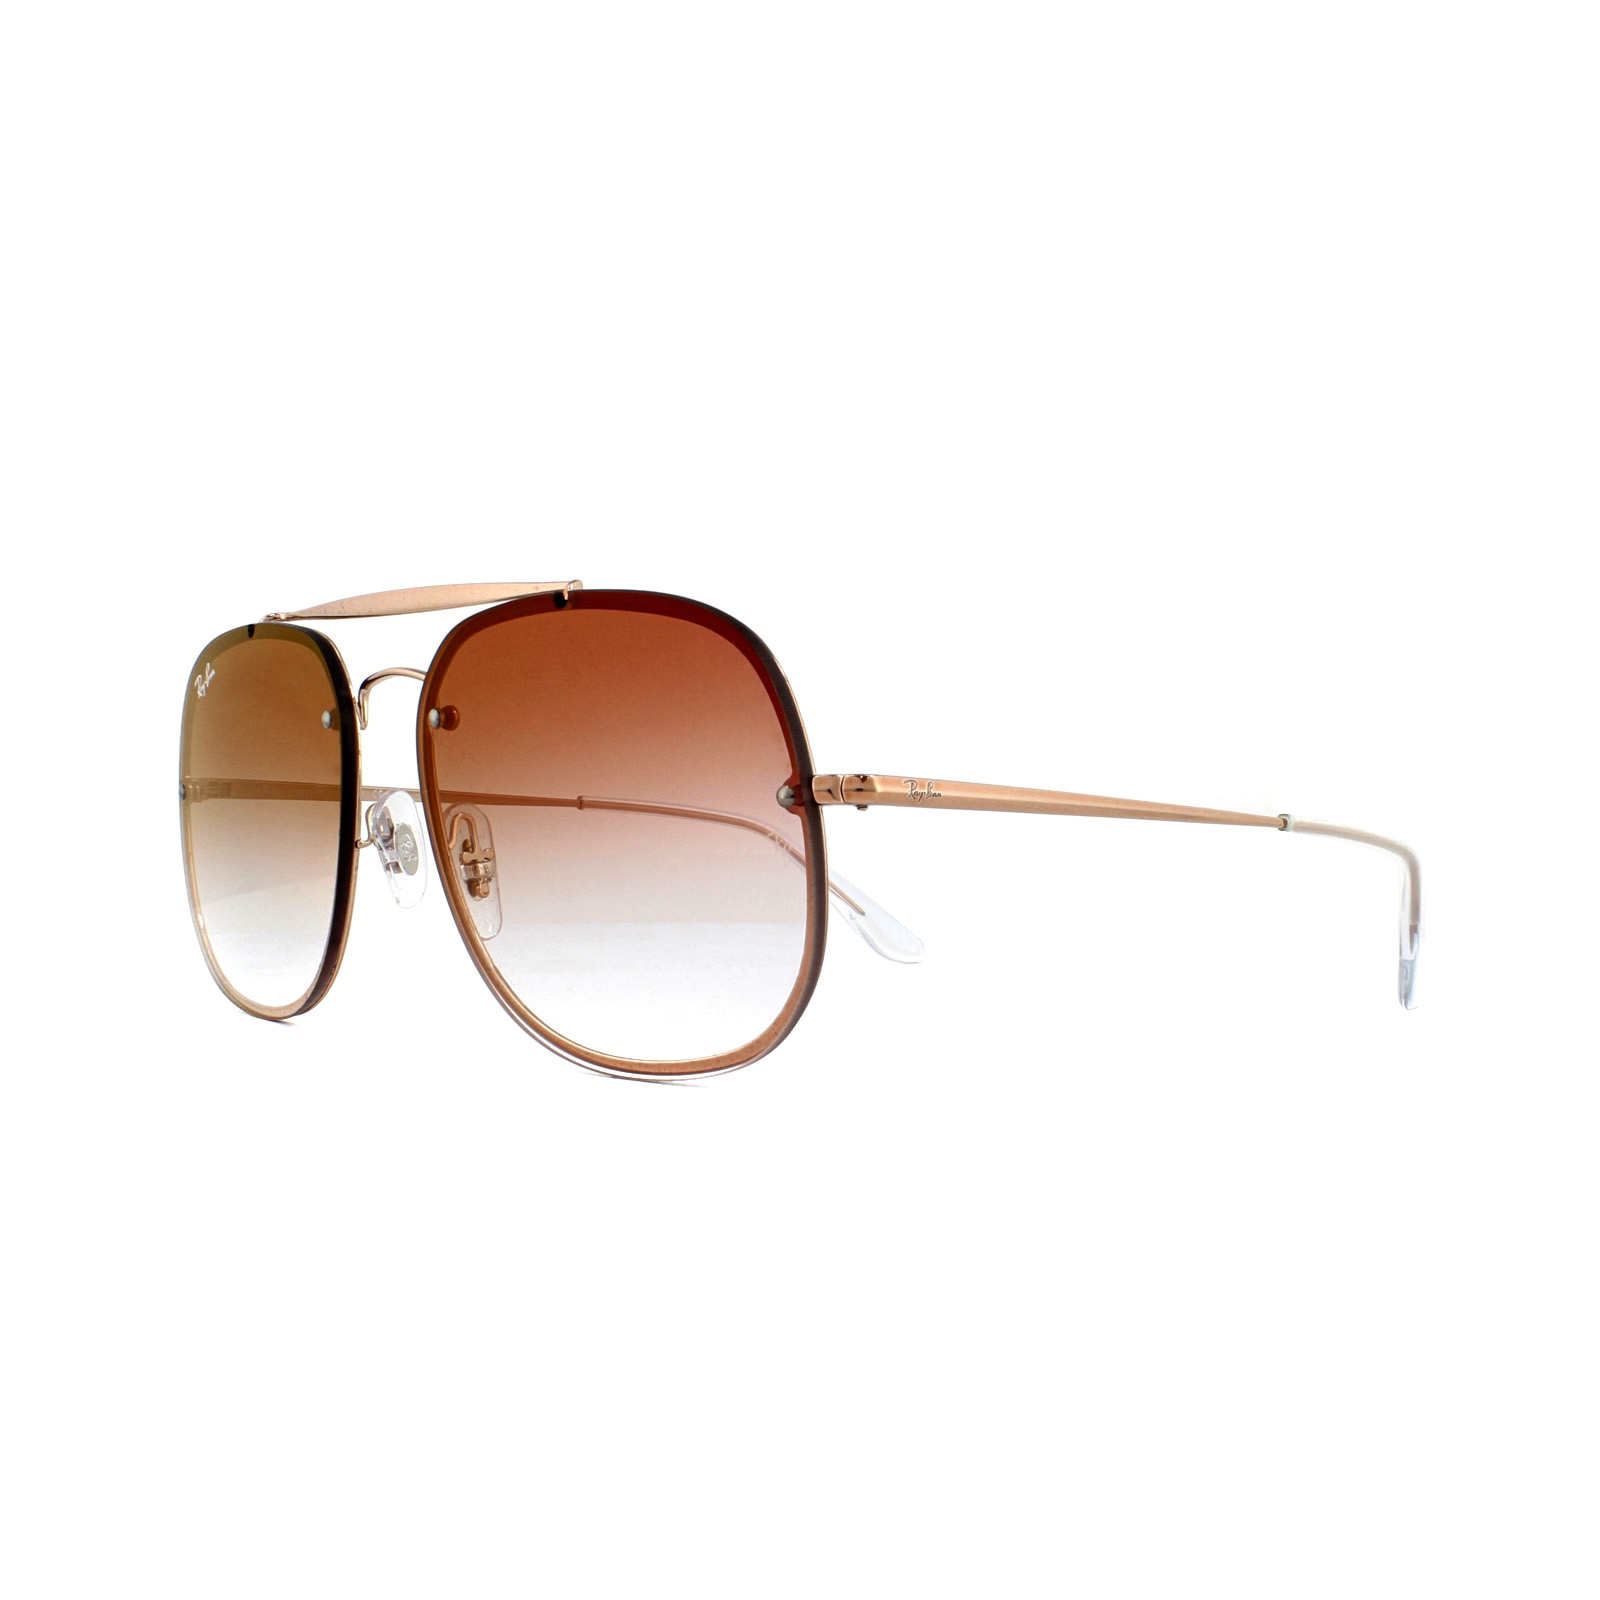 976fbb4e55 Sentinel Ray-Ban Sunglasses Blaze The General RB3583N 9035V0 Copper Clear  Gradient Red Mi